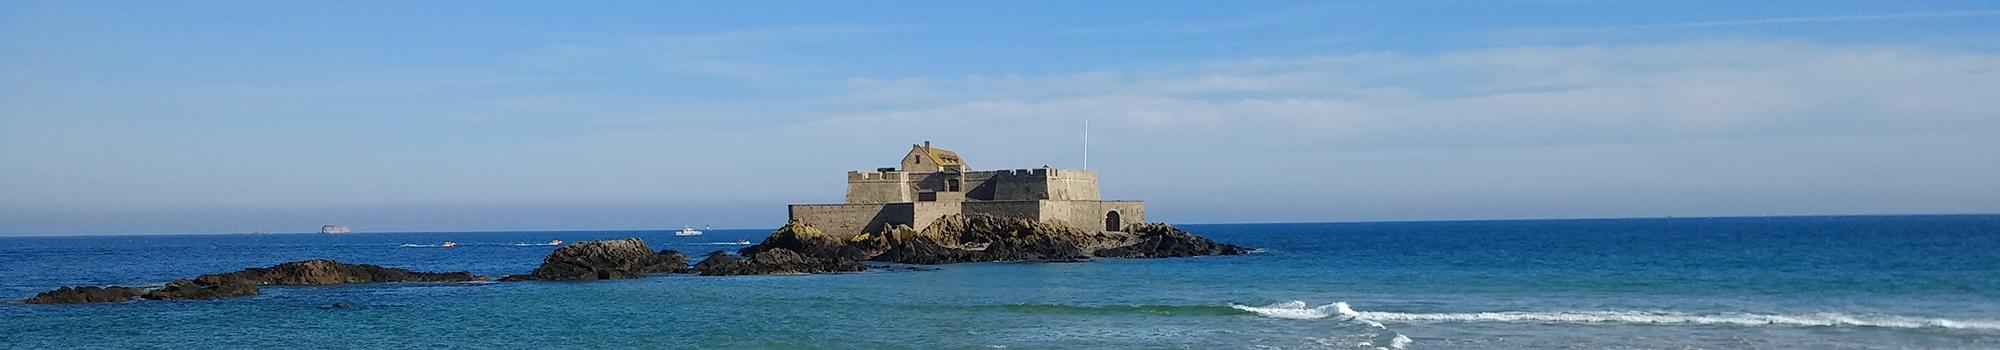 Fort national in St malo